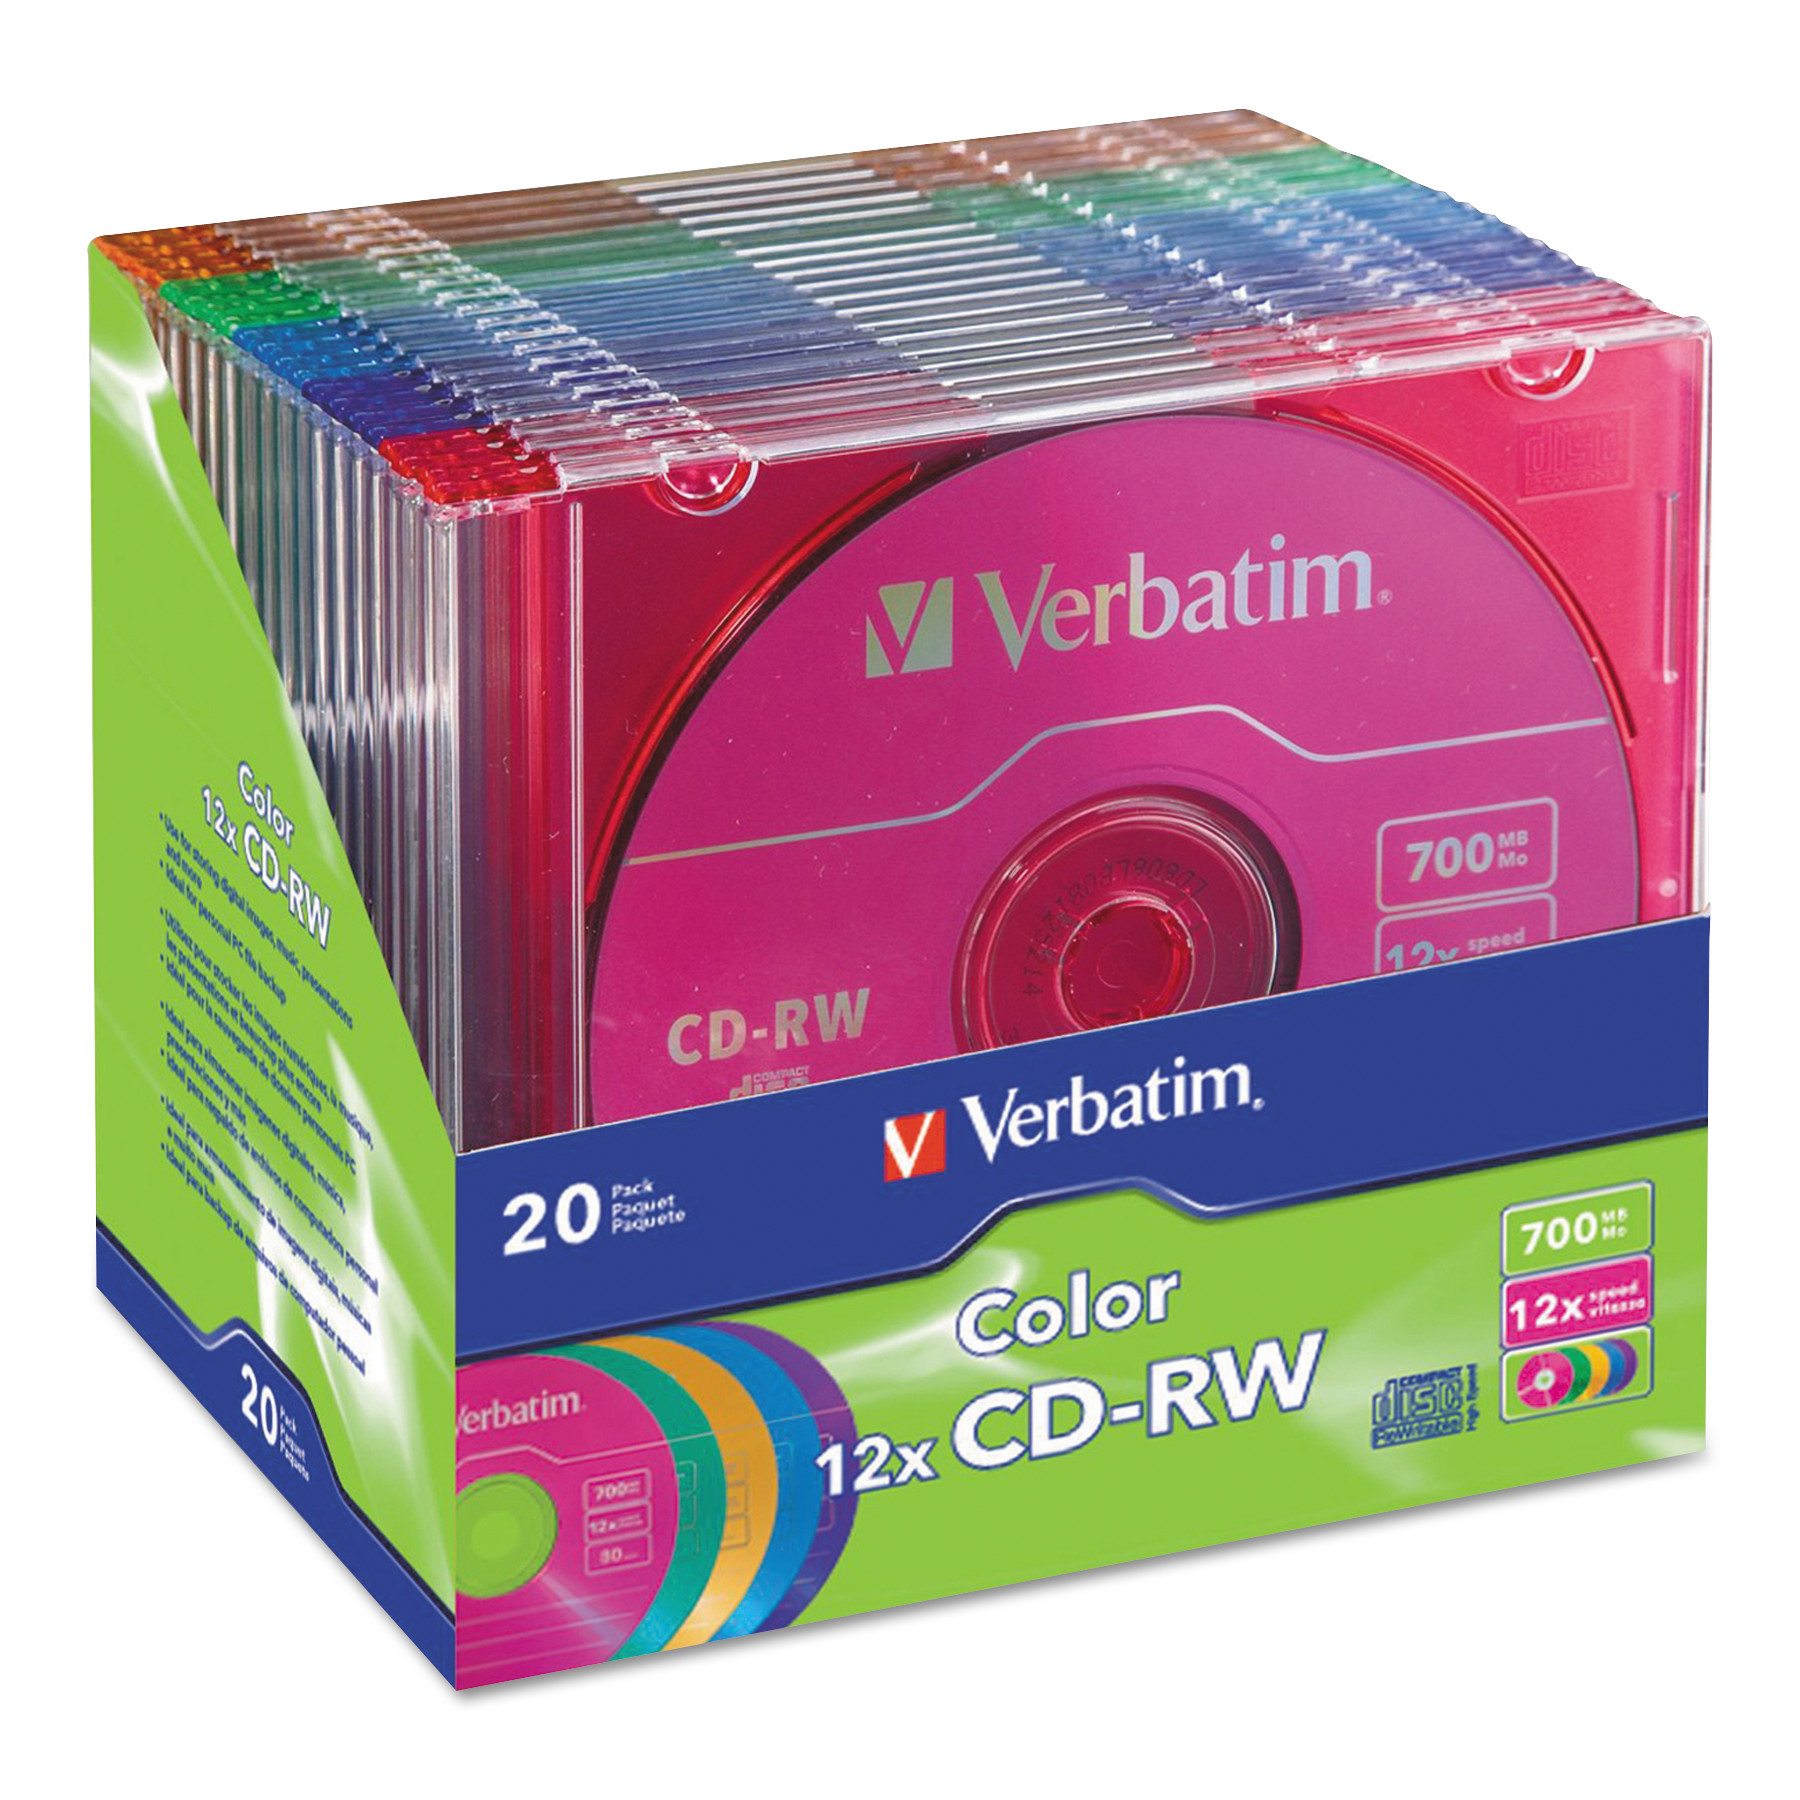 Verbatim CD-RW High-Speed Rewritable Disc, 700MB, 12x, Slim Jewel Case, 20/Pack